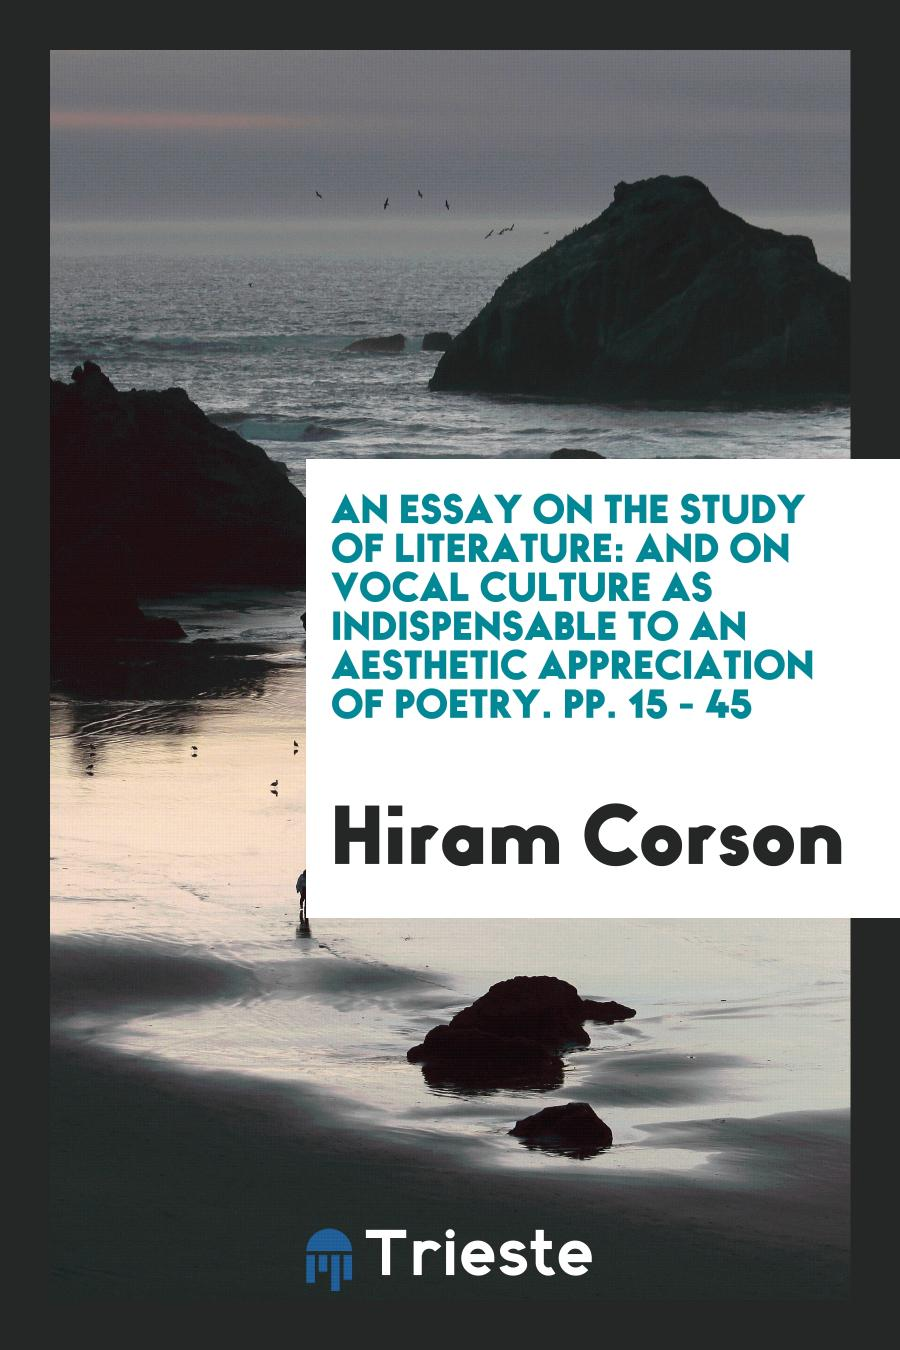 An Essay on the Study of Literature: And on Vocal Culture as Indispensable to an Aesthetic appreciation of poetry. pp. 15 - 45